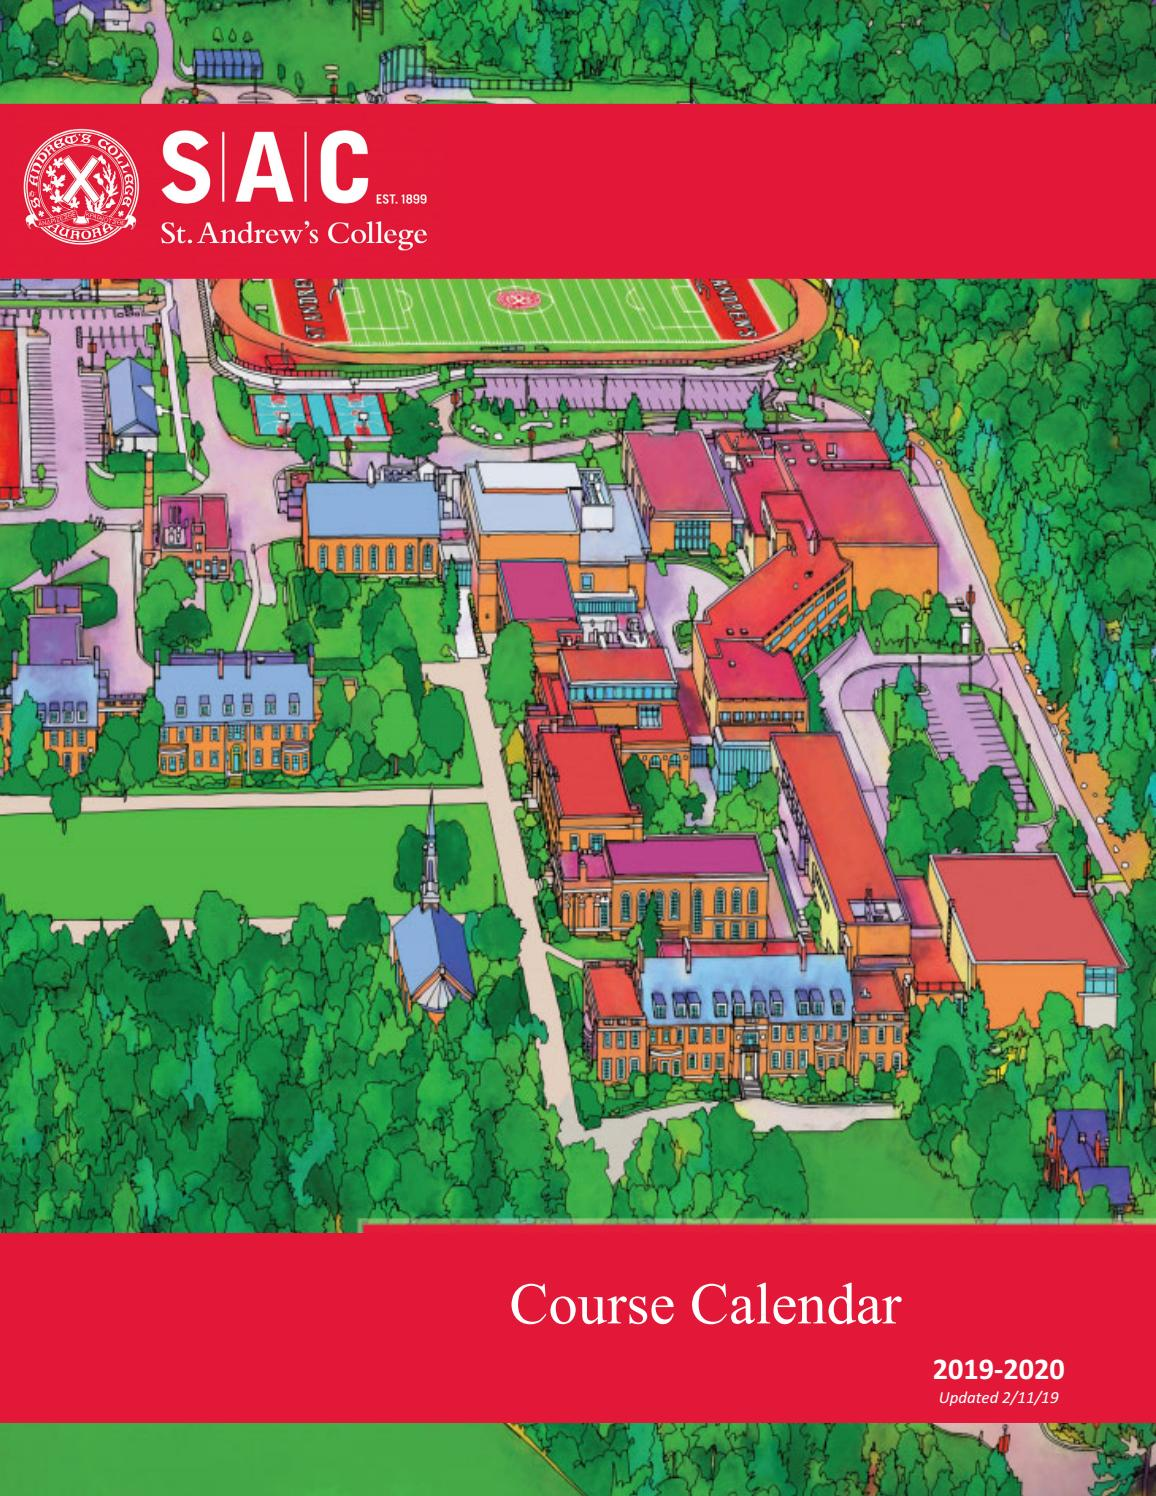 2019-2020 Course Calendar by St  Andrew's College - issuu